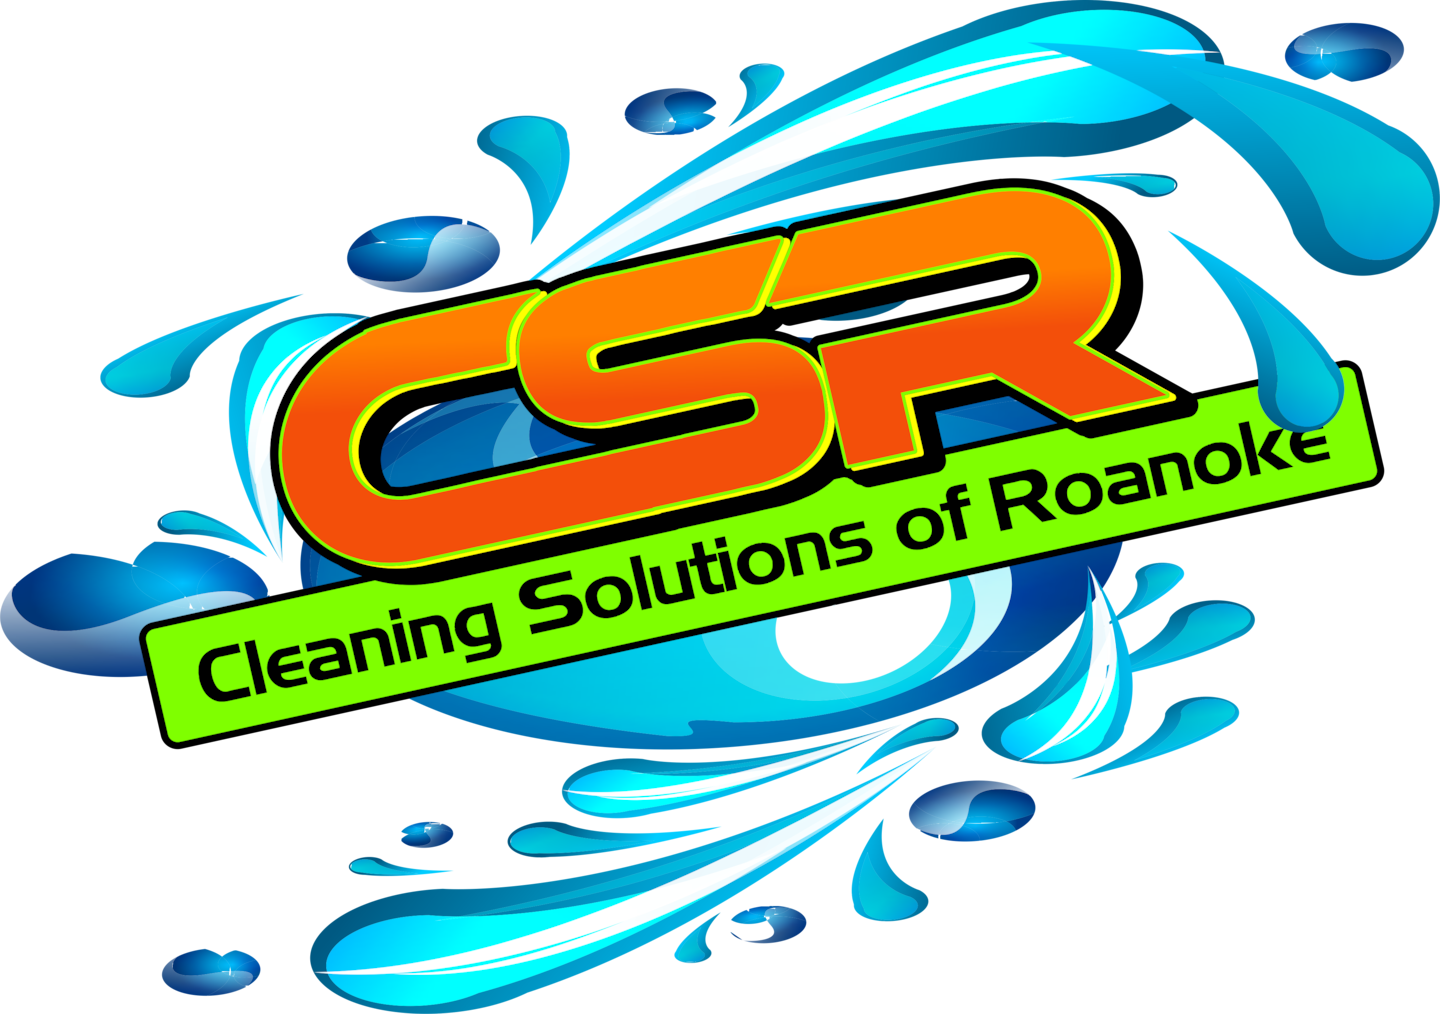 Cleaning Solutions of Roanoke